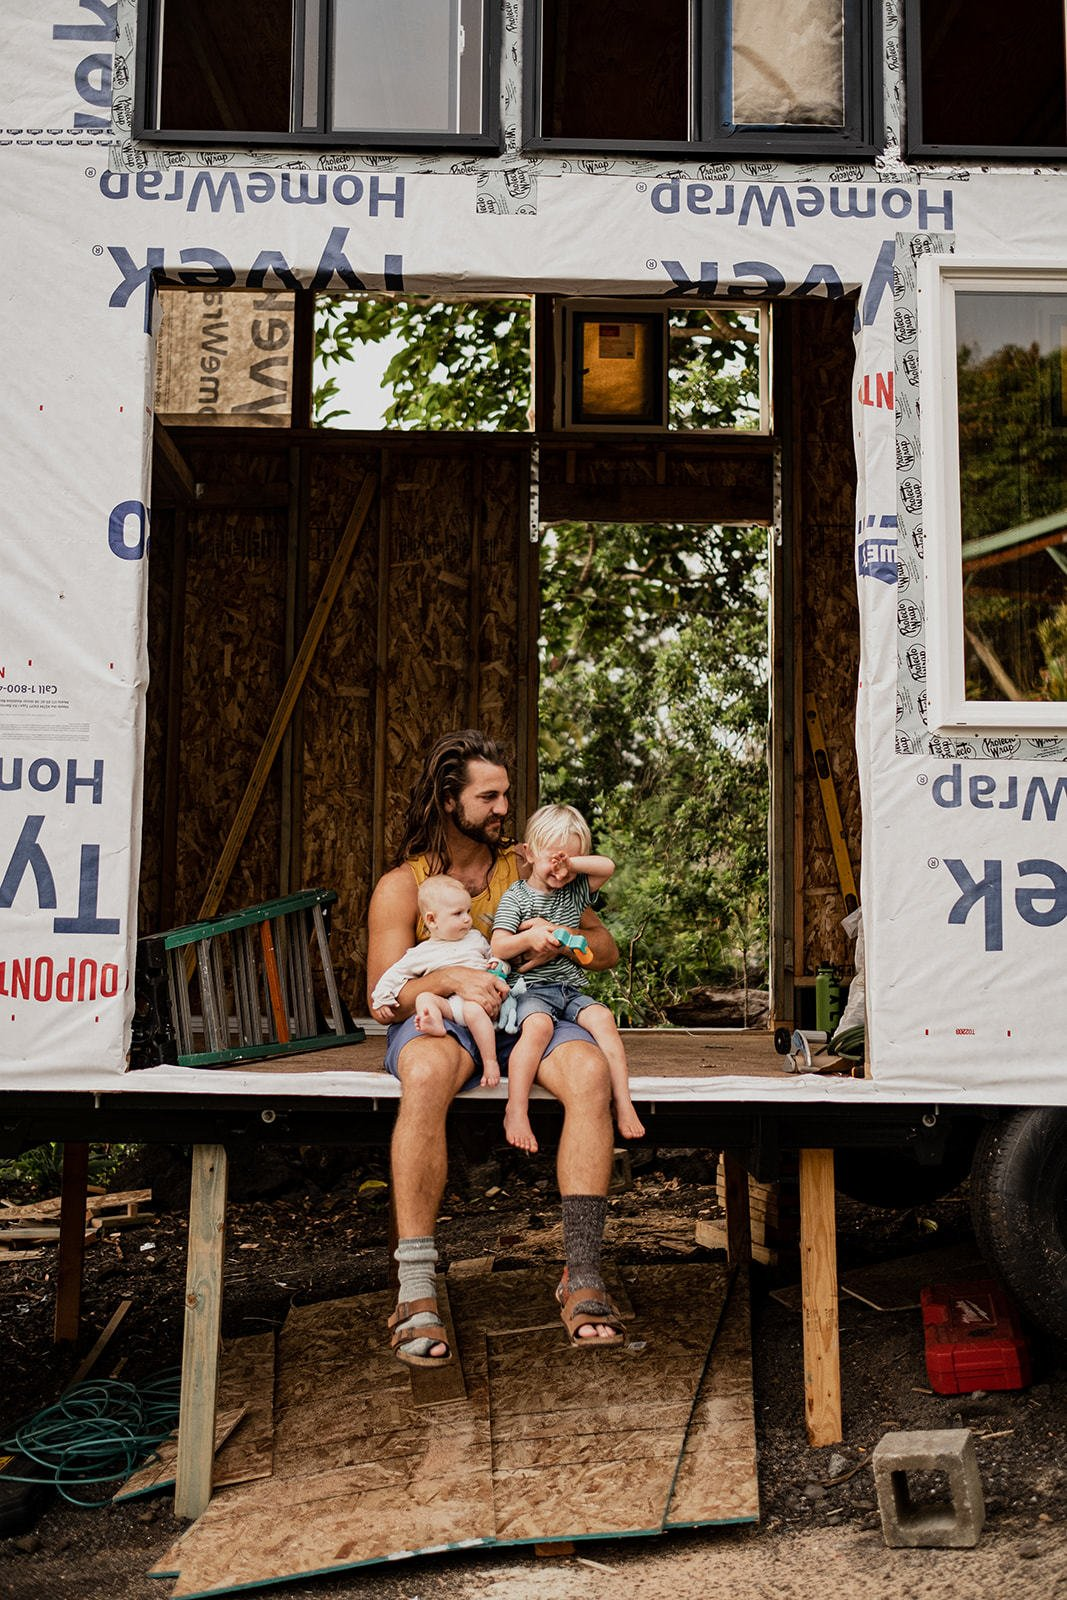 Built over 25 long working days, the backyard construction project was also balanced with regular visits from Taylor and Michaella's two children, Caedmon and Iona.  Photo 4 of 14 in A Hawaii-Based Couple Build a Luminous Tiny House in Just 25 Days